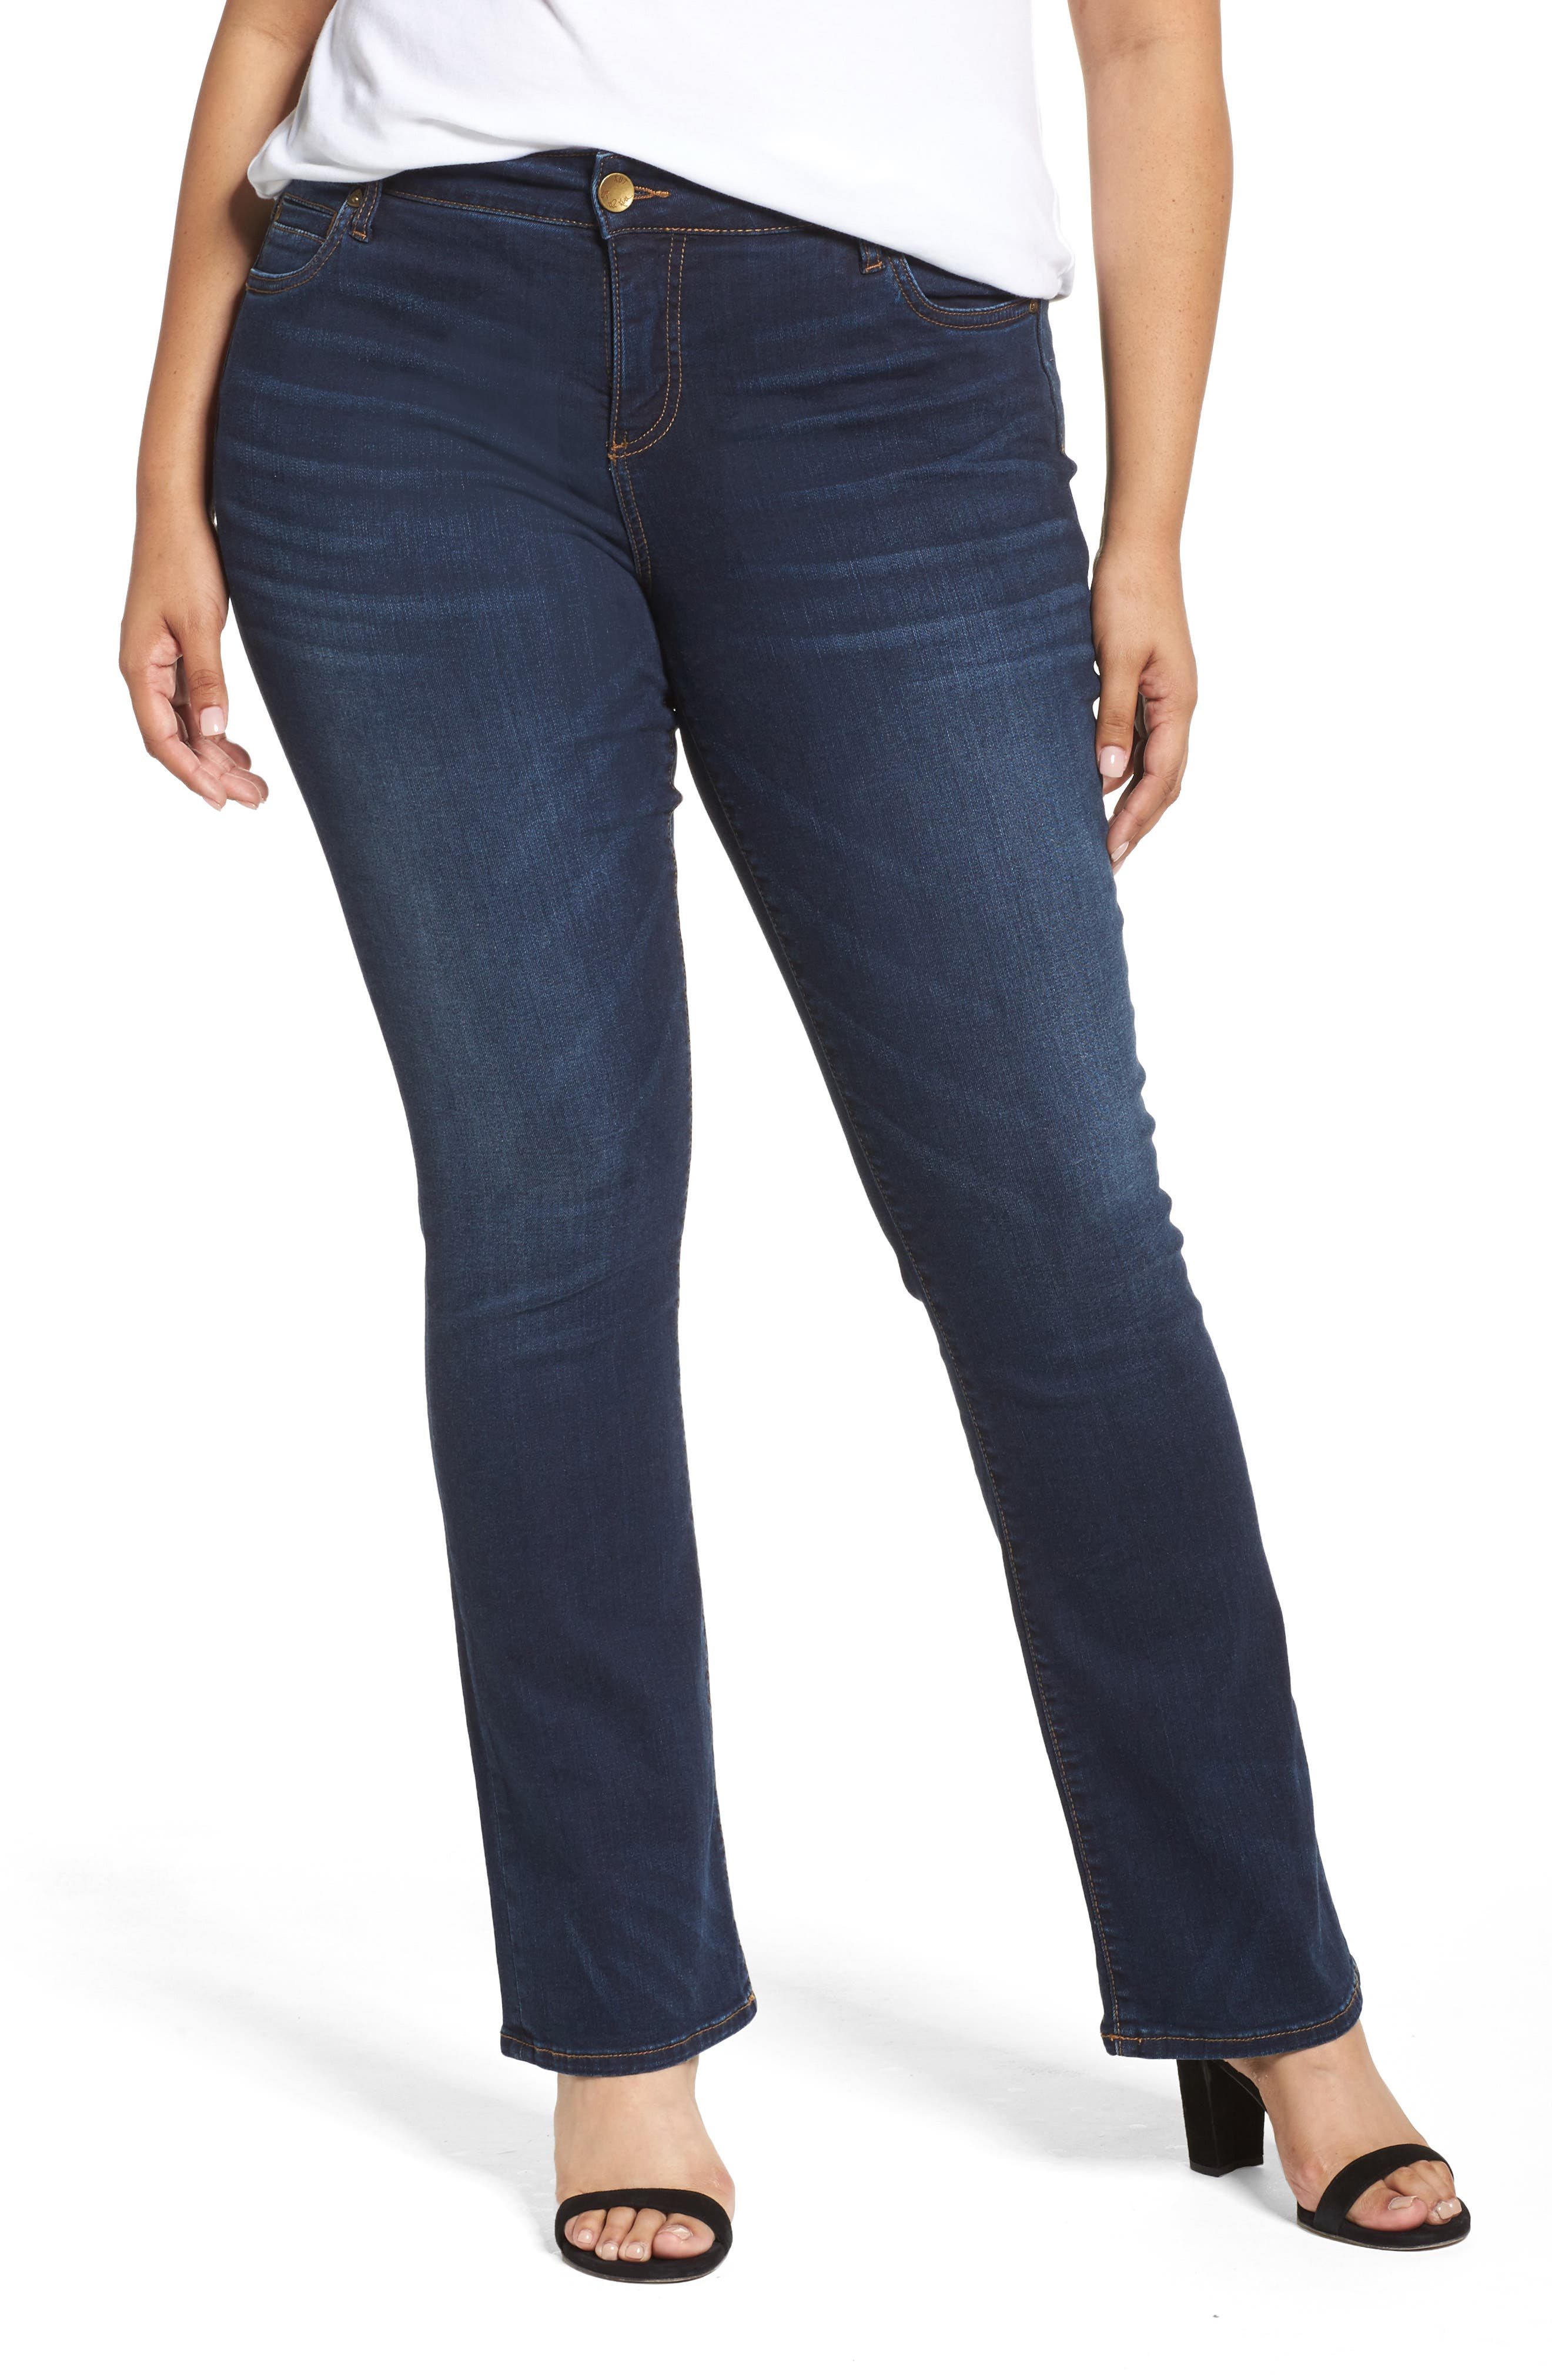 Plus Size Kut From The Kloth Natalie High Waist Bootcut Jeans, Blue